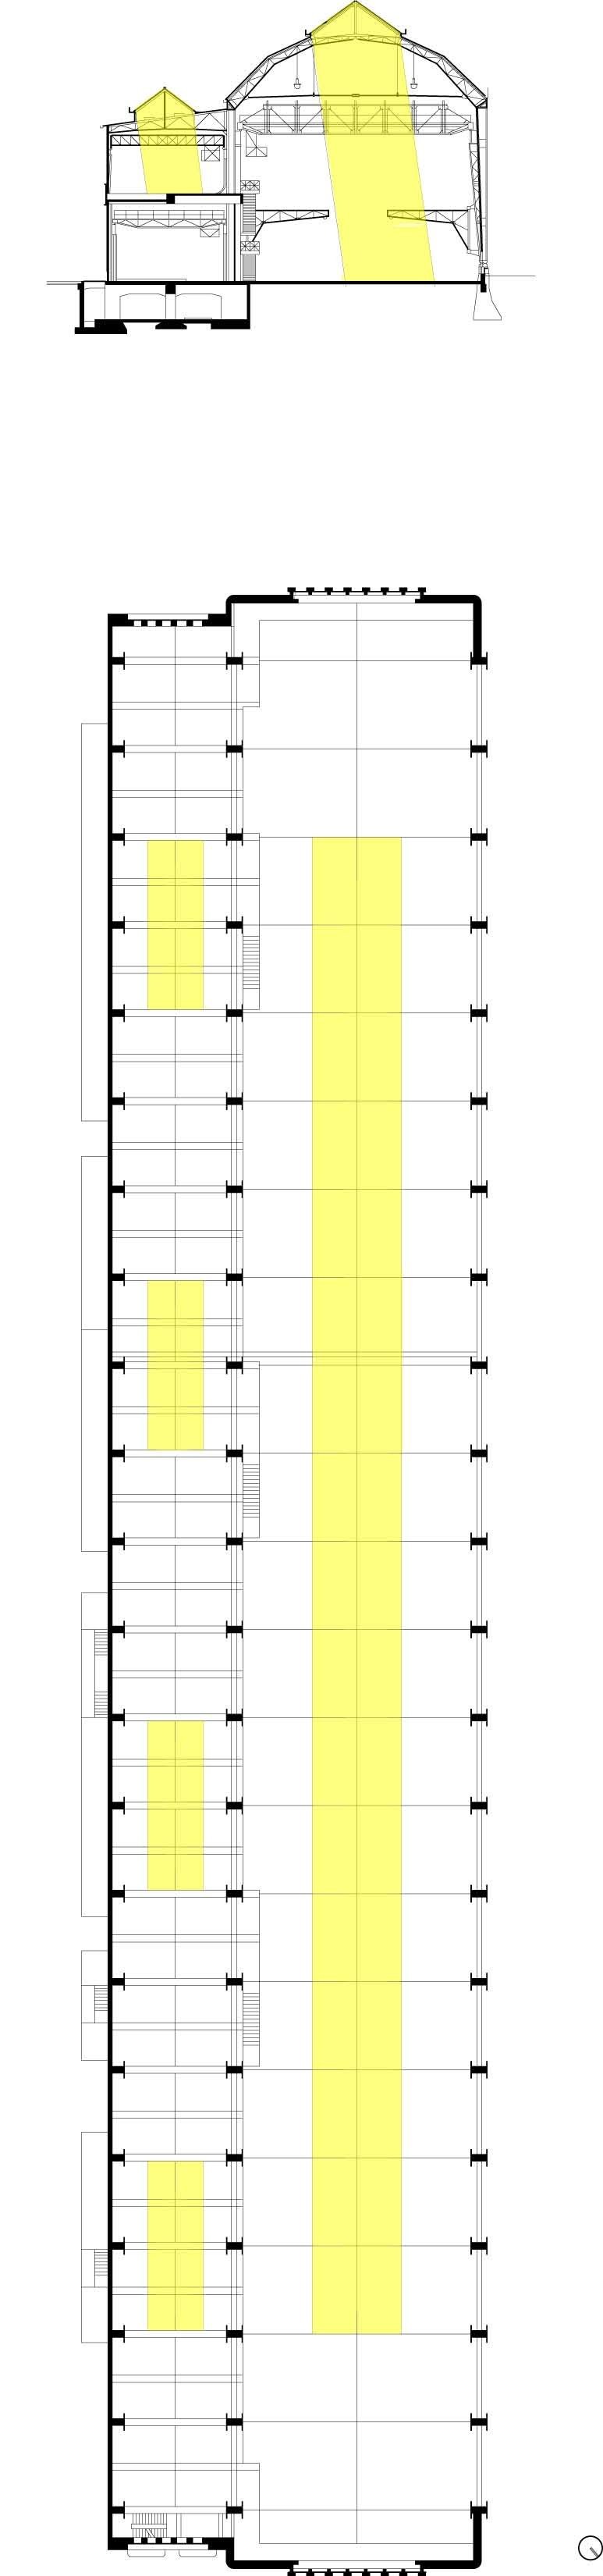 Direct Natural Light and Skylight Placement Diagrams